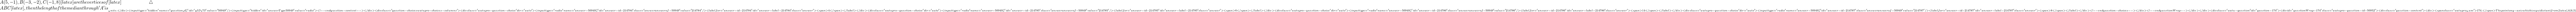 A(5, -1), B(-3, -2), C(-1, 8)[latex] are the vertices of [latex]\bigtriangleup ABC[latex], then the length of the median through 'A' is ___ units.</div><input type='hidden' name='question_id[]' id='qID_173' value='50949' /><input type='hidden' id='answerType50949' value='radio'><!-- end question-content--></div><div class='question-choices watupro-choices-columns '><div class='watupro-question-choice  ' dir='auto' ><input type='radio' name='answer-50949[]' id='answer-id-214784' class='answer   answerof-50949 ' value='214784'   /><label for='answer-id-214784' id='answer-label-214784' class=' answer'><span>4</span></label></div><div class='watupro-question-choice  ' dir='auto' ><input type='radio' name='answer-50949[]' id='answer-id-214785' class='answer   answerof-50949 ' value='214785'   /><label for='answer-id-214785' id='answer-label-214785' class=' answer'><span>6</span></label></div><div class='watupro-question-choice  ' dir='auto' ><input type='radio' name='answer-50949[]' id='answer-id-214786' class='answer   answerof-50949 ' value='214786'   /><label for='answer-id-214786' id='answer-label-214786' class=' answer'><span>14</span></label></div><div class='watupro-question-choice  ' dir='auto' ><input type='radio' name='answer-50949[]' id='answer-id-214787' class='answer   answerof-50949 ' value='214787'   /><label for='answer-id-214787' id='answer-label-214787' class=' answer'><span>8</span></label></div><!-- end question-choices--></div><!-- end questionWrap--></div></div><div class='watu-question ' id='question-174'><div id='questionWrap-174'  class='   watupro-question-id-50952'> <div class='question-content' ><div><span class='watupro_num'>174. </span>The point on y - axis which is equidistant from [latex]A(6, 5)